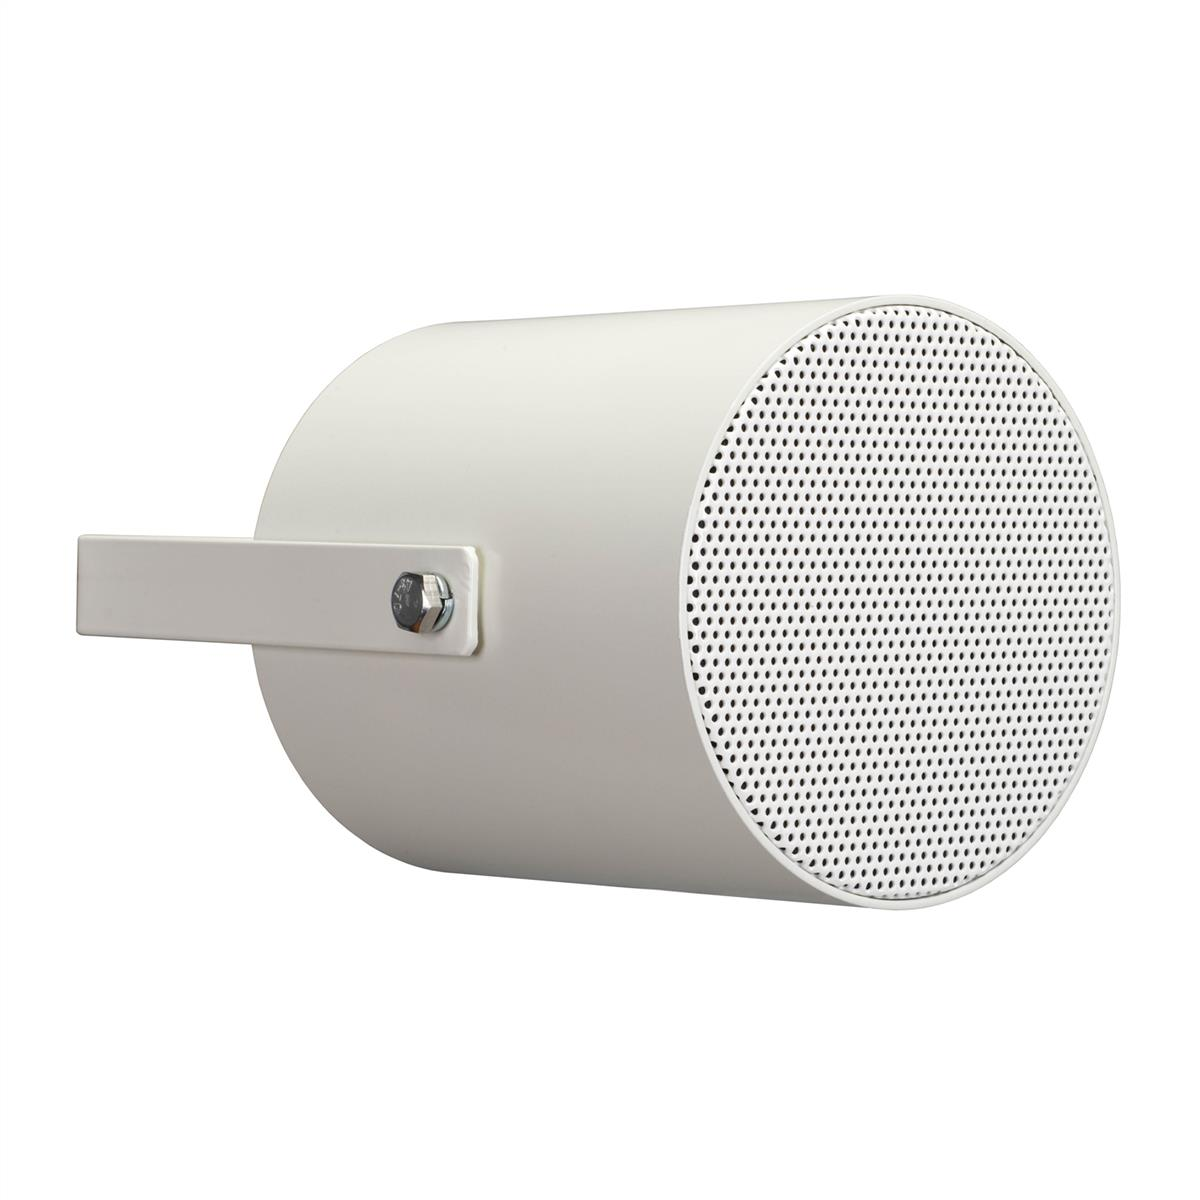 Apart 6 in two-way ceiling speaker 100 volt / 10 watts